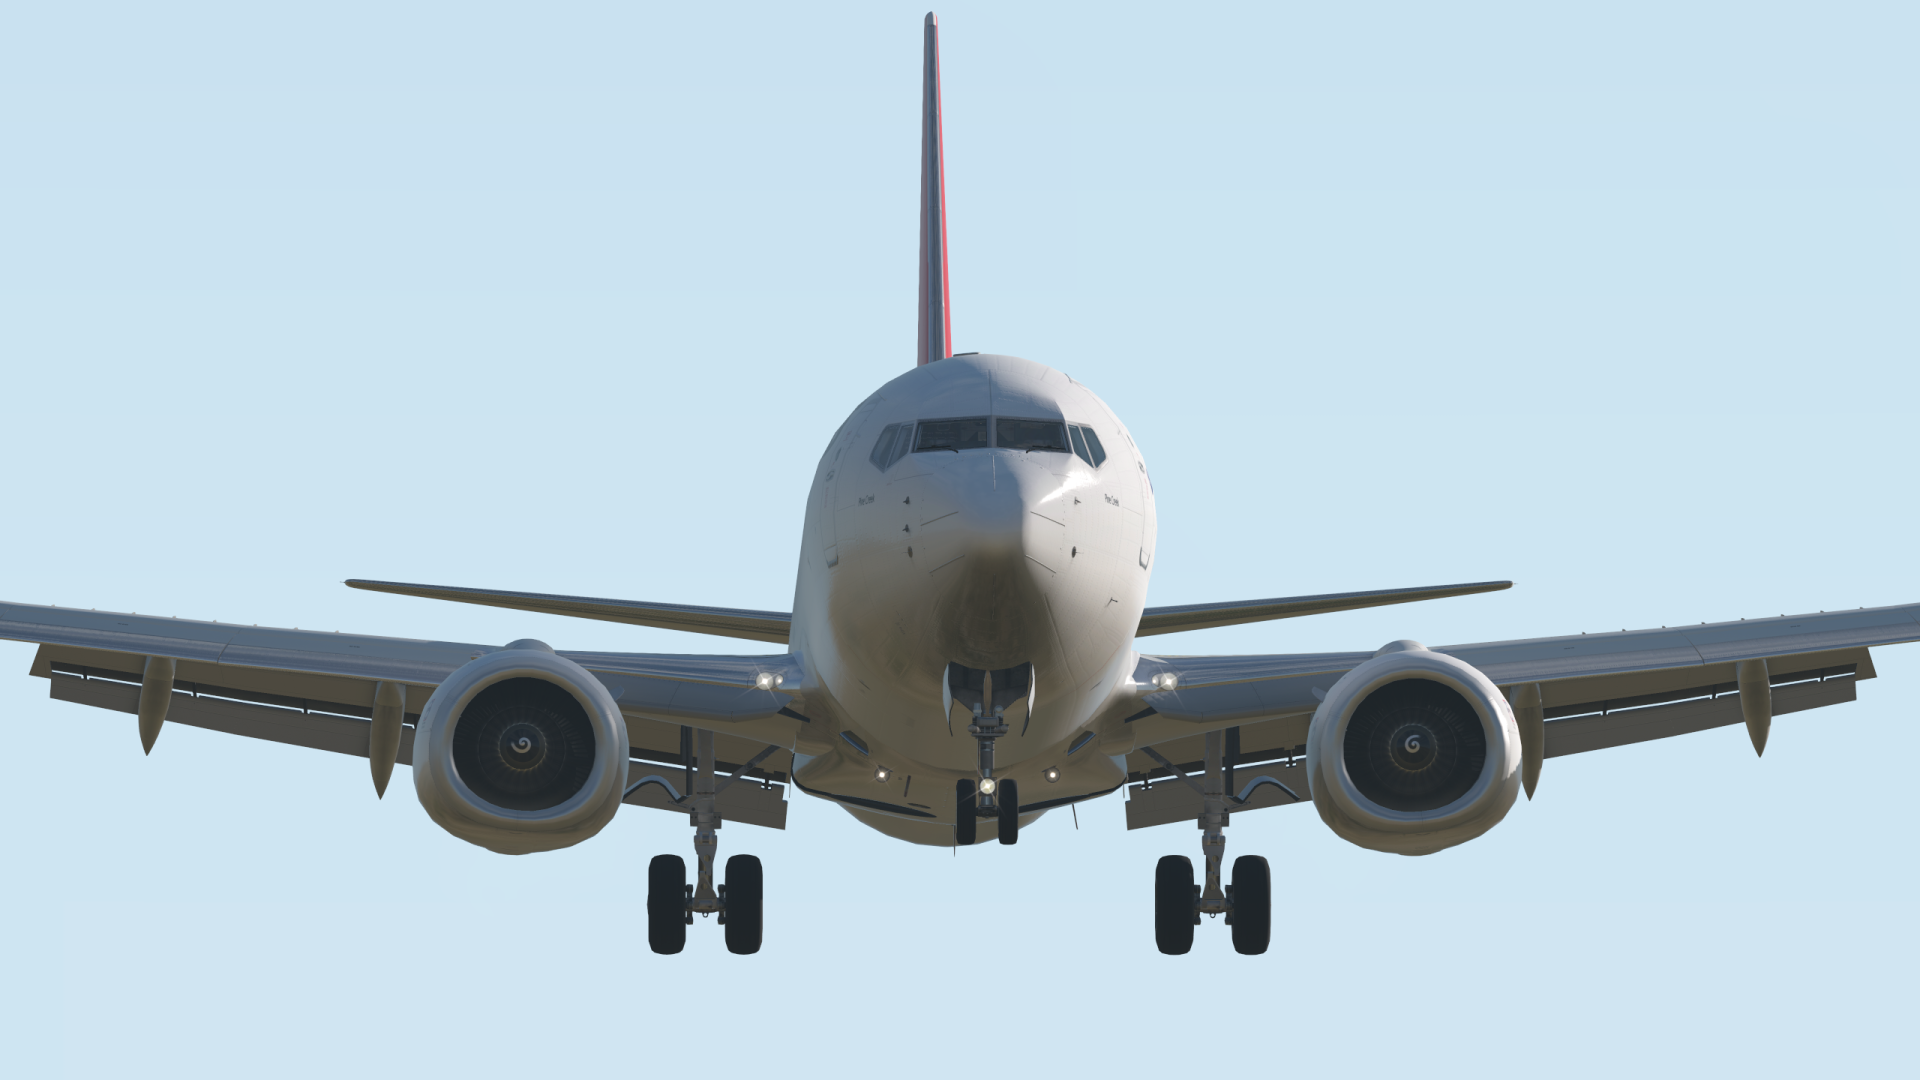 X-PLANE 11 DOWNLOAD